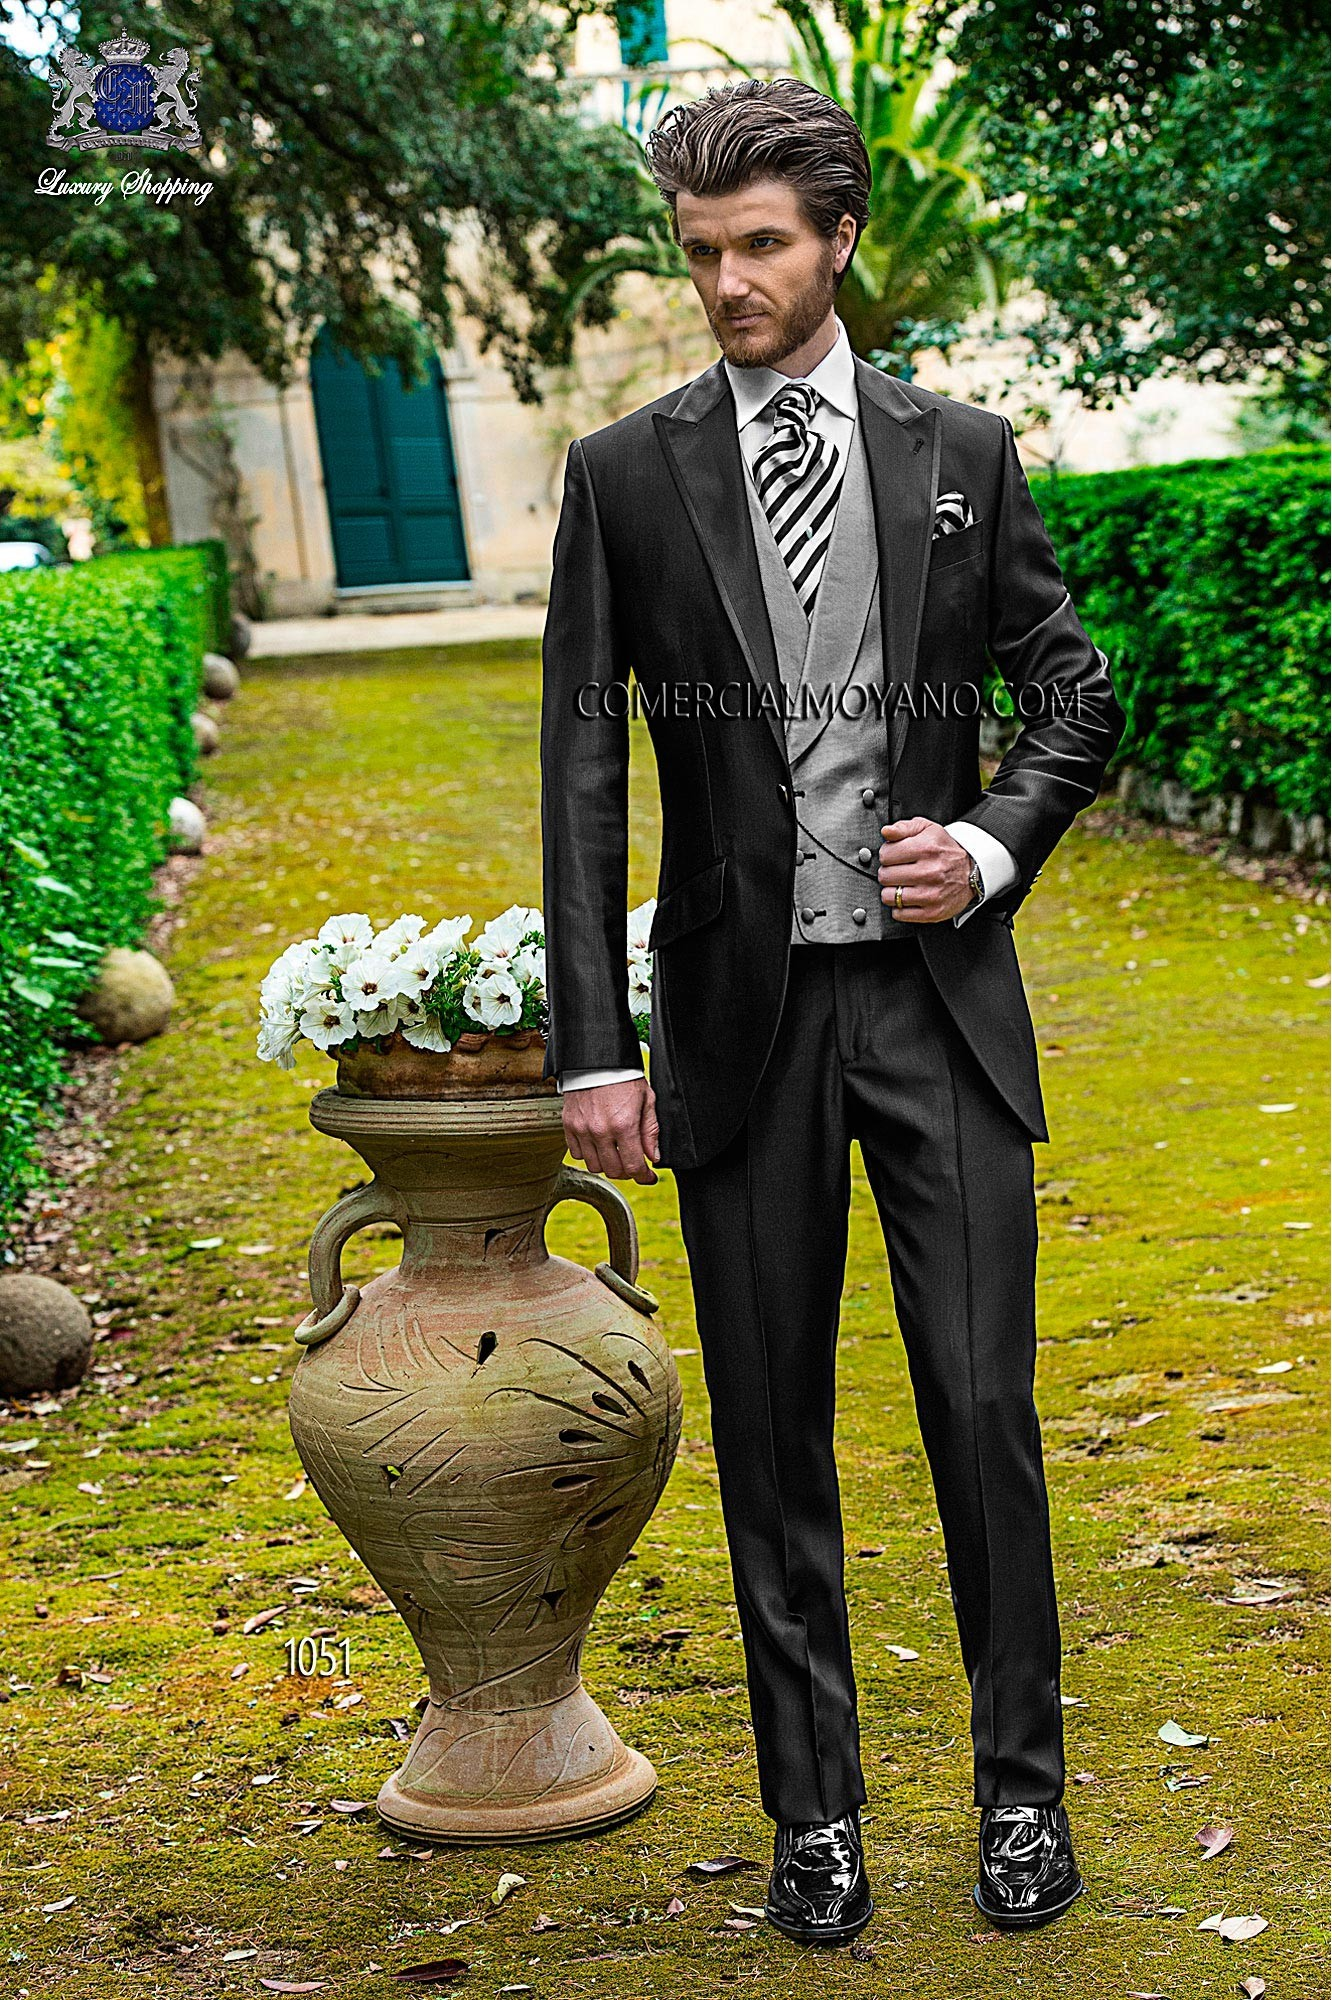 Fashion black men wedding suit model 1051 Ottavio Nuccio Gala